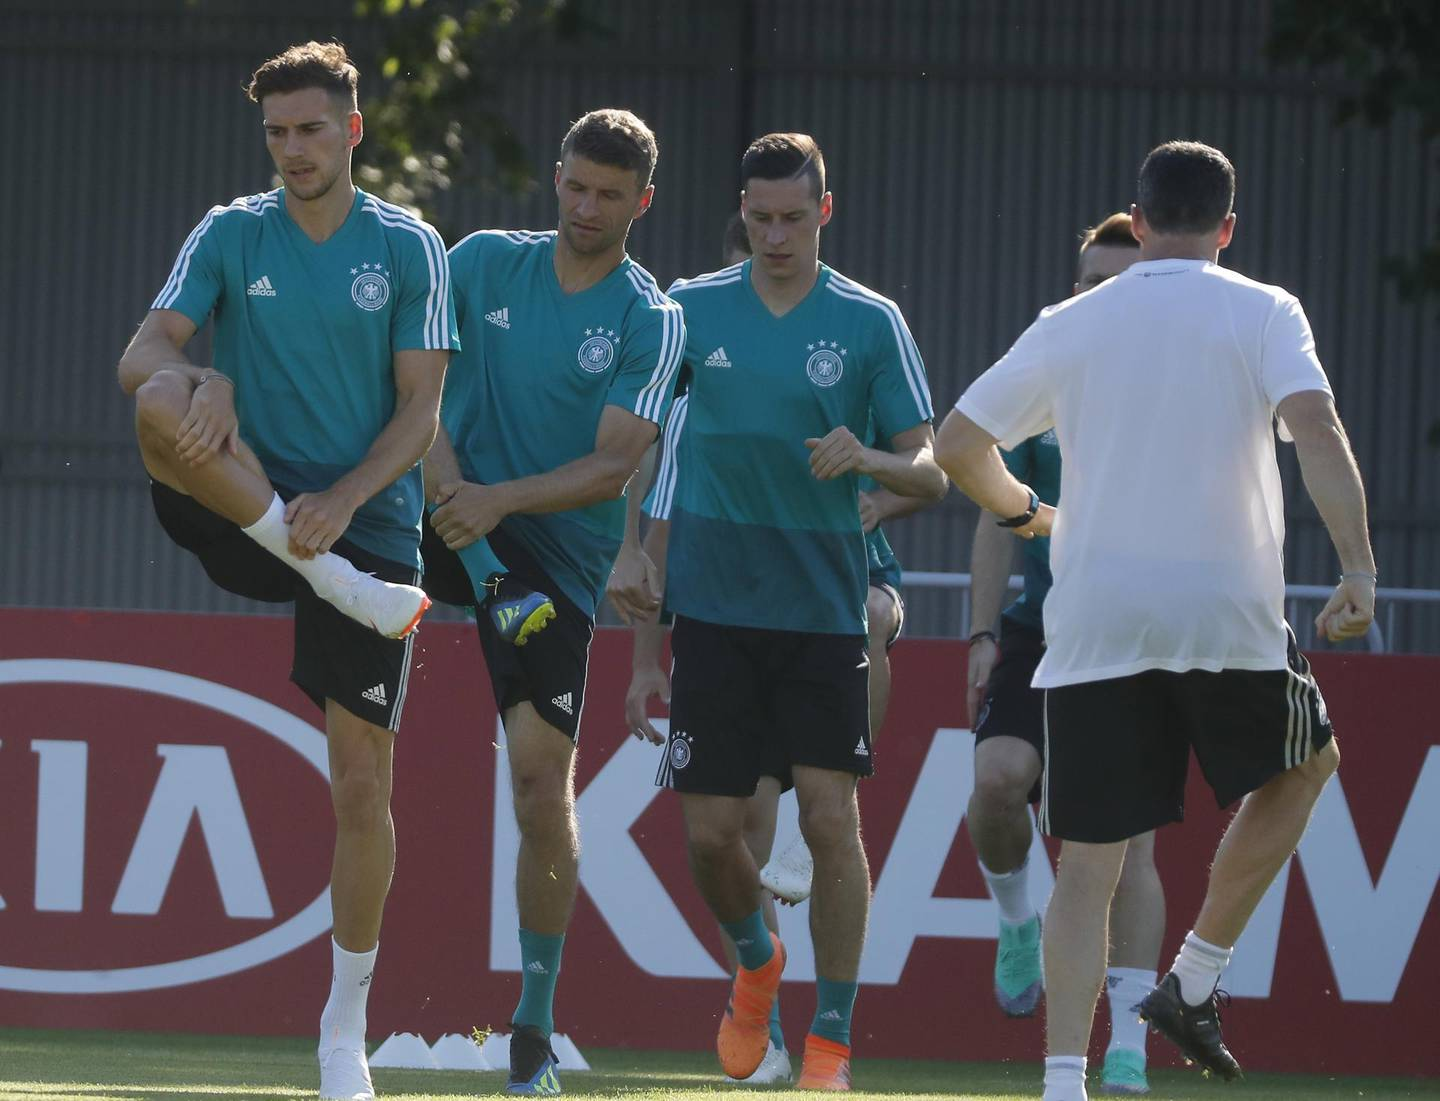 epa06813744 Germany's players attend a training session in Vatutinki sport base outside Moscow, Russia, 16 June 2018. Germany will face Mexico in the FIFA World Cup 2018 Group F preliminary round soccer match on 17 June 2018.  EPA/SERGEI ILNITSKY EDITORIAL USE ONLY  EDITORIAL USE ONLY